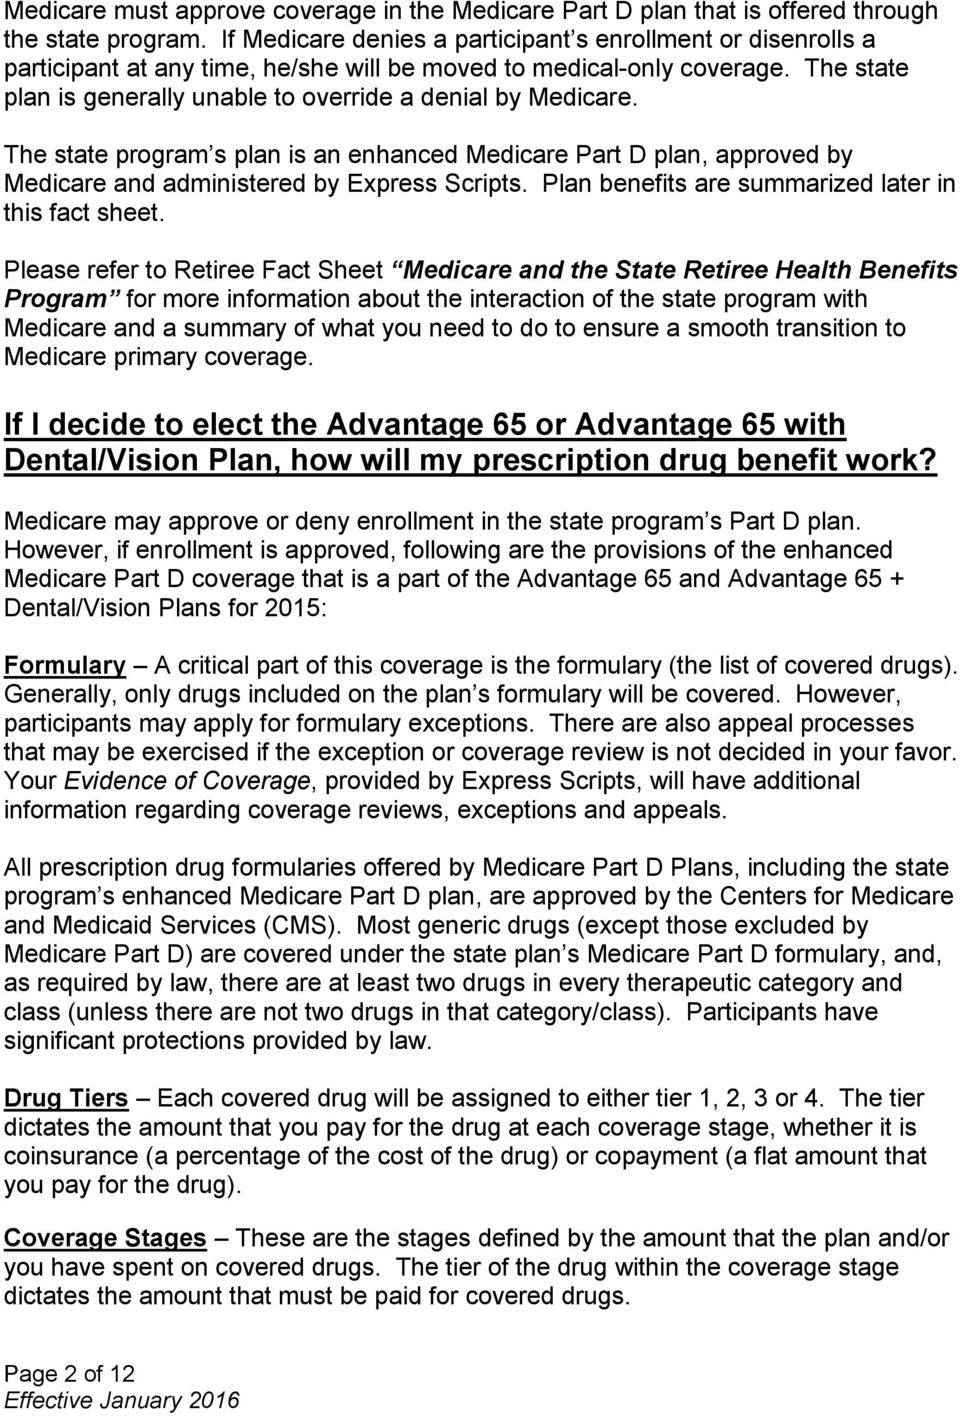 The state plan is generally unable to override a denial by Medicare. The state program s plan is an enhanced Medicare Part D plan, approved by Medicare and administered by Express Scripts.